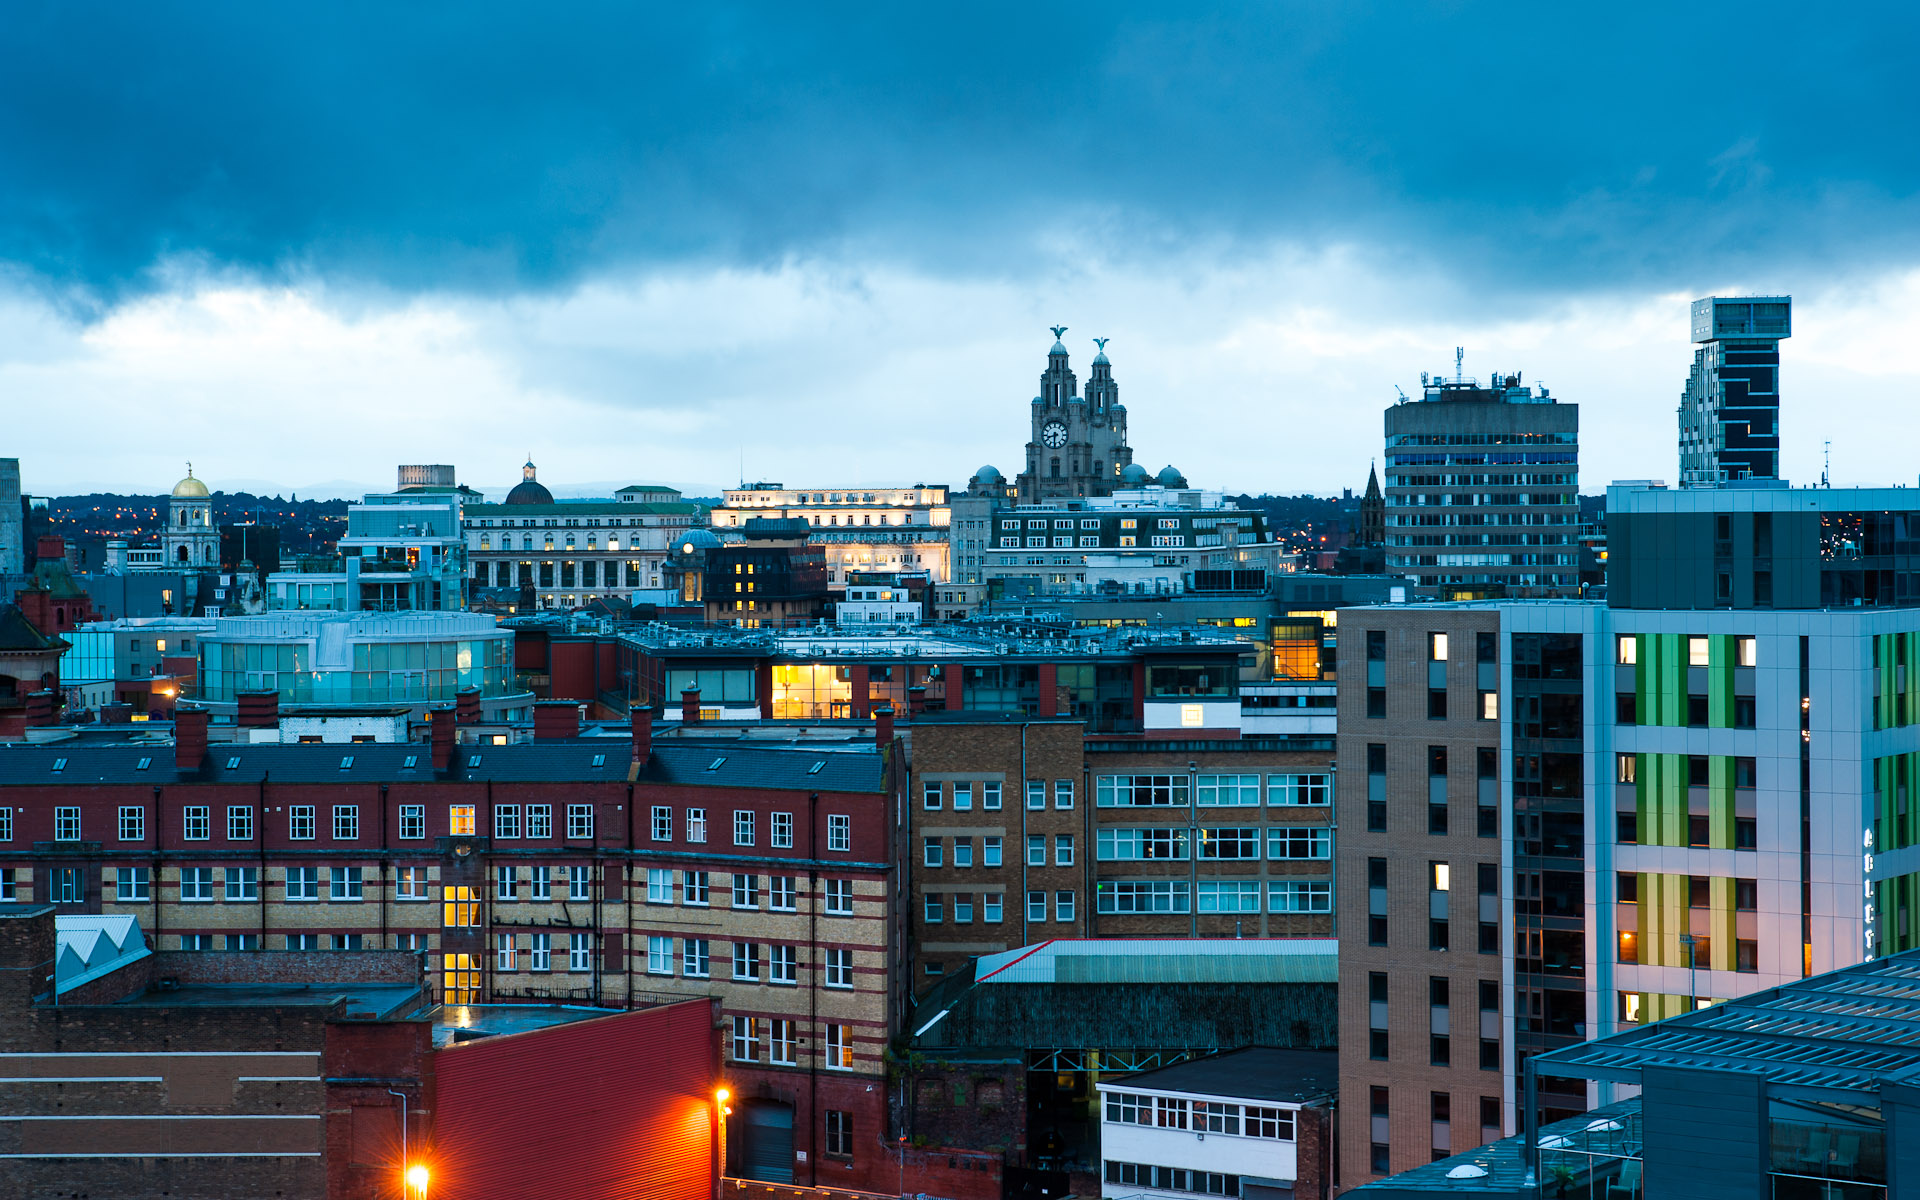 Liver building Liverpool across city rooftops at dusk night